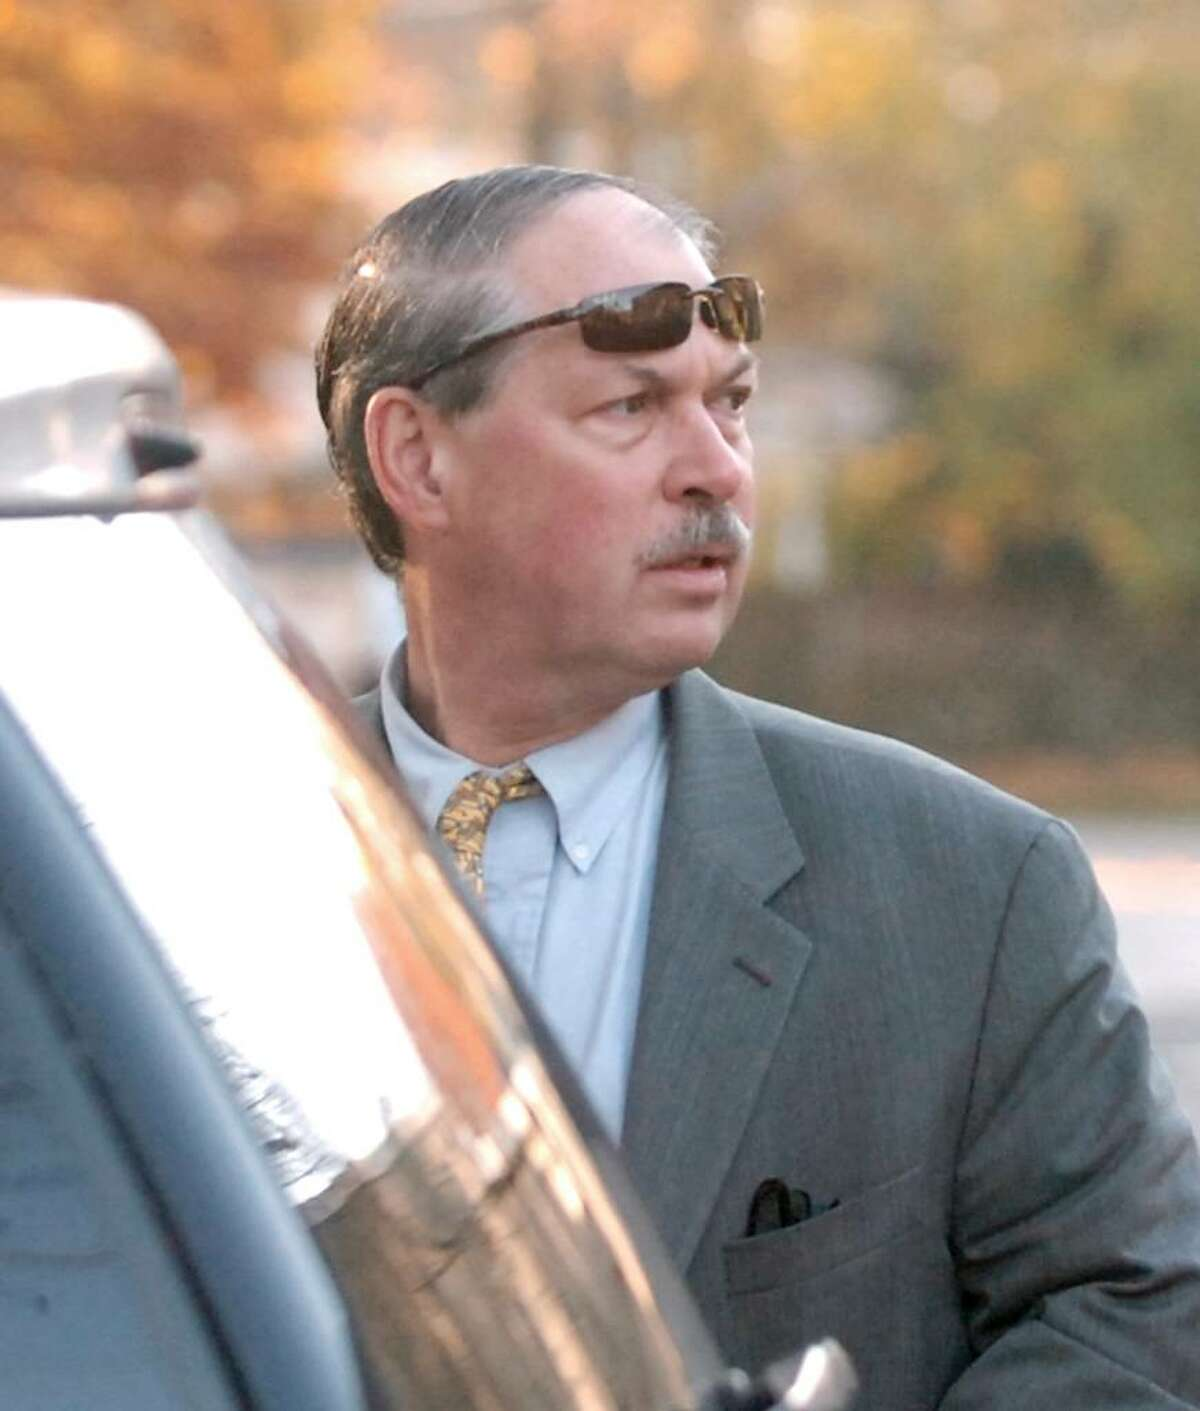 Obstetrician and gynecologist Dr. Ben Ramaley outside his practice at 2600 Post Road in Southport, Connecticut, Monday morning, Nov. 9, 2009.